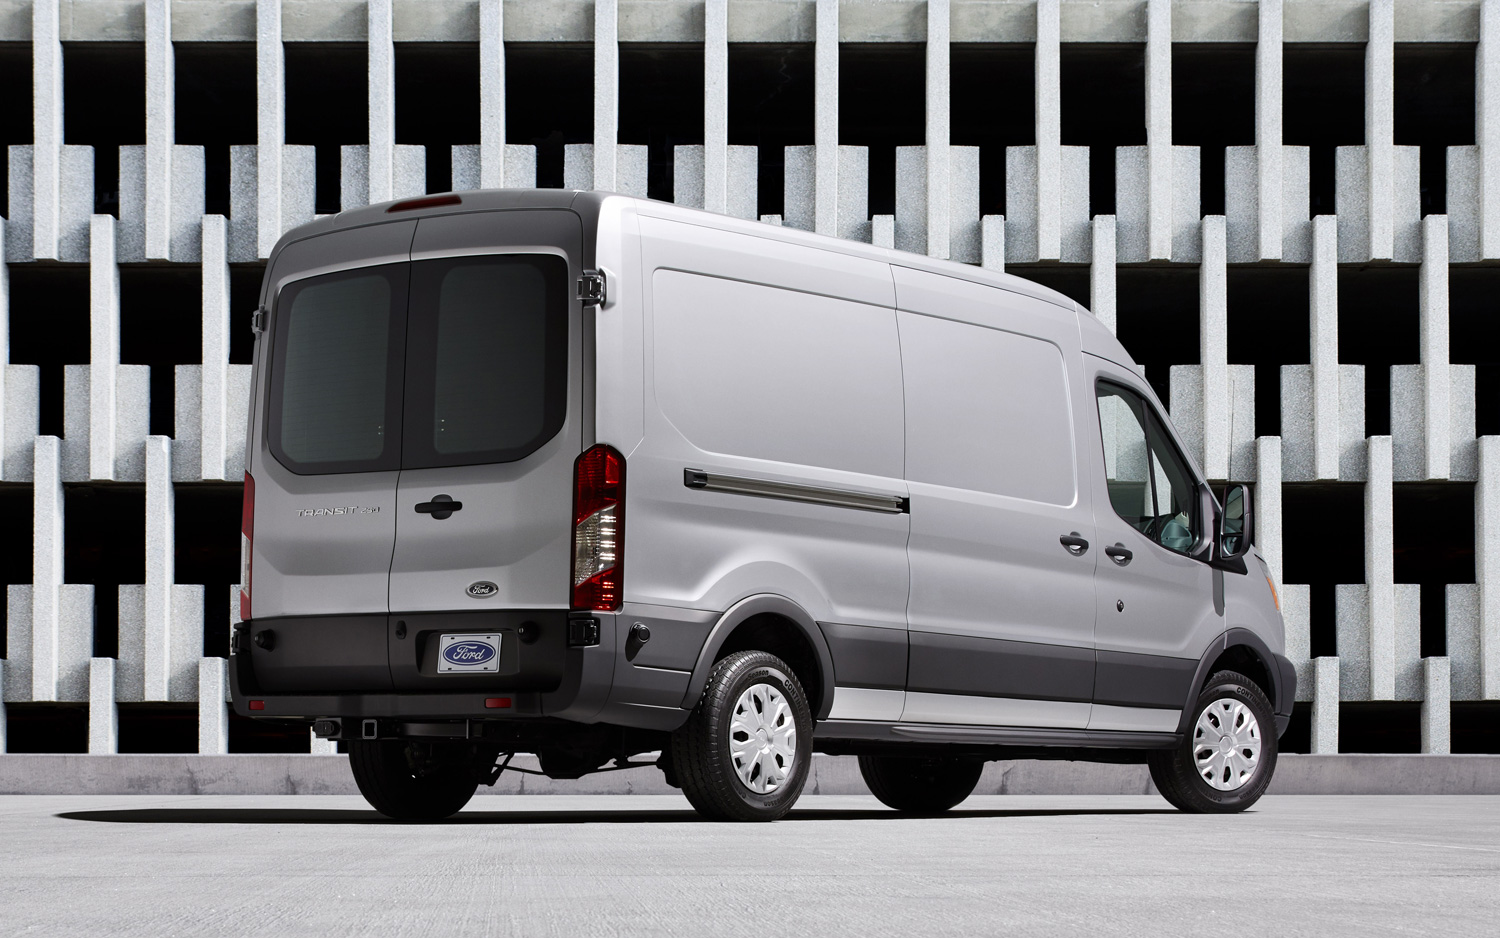 2015 Ford Transit 150 Wagon White Rear Side Design (Photo 13 of 13)